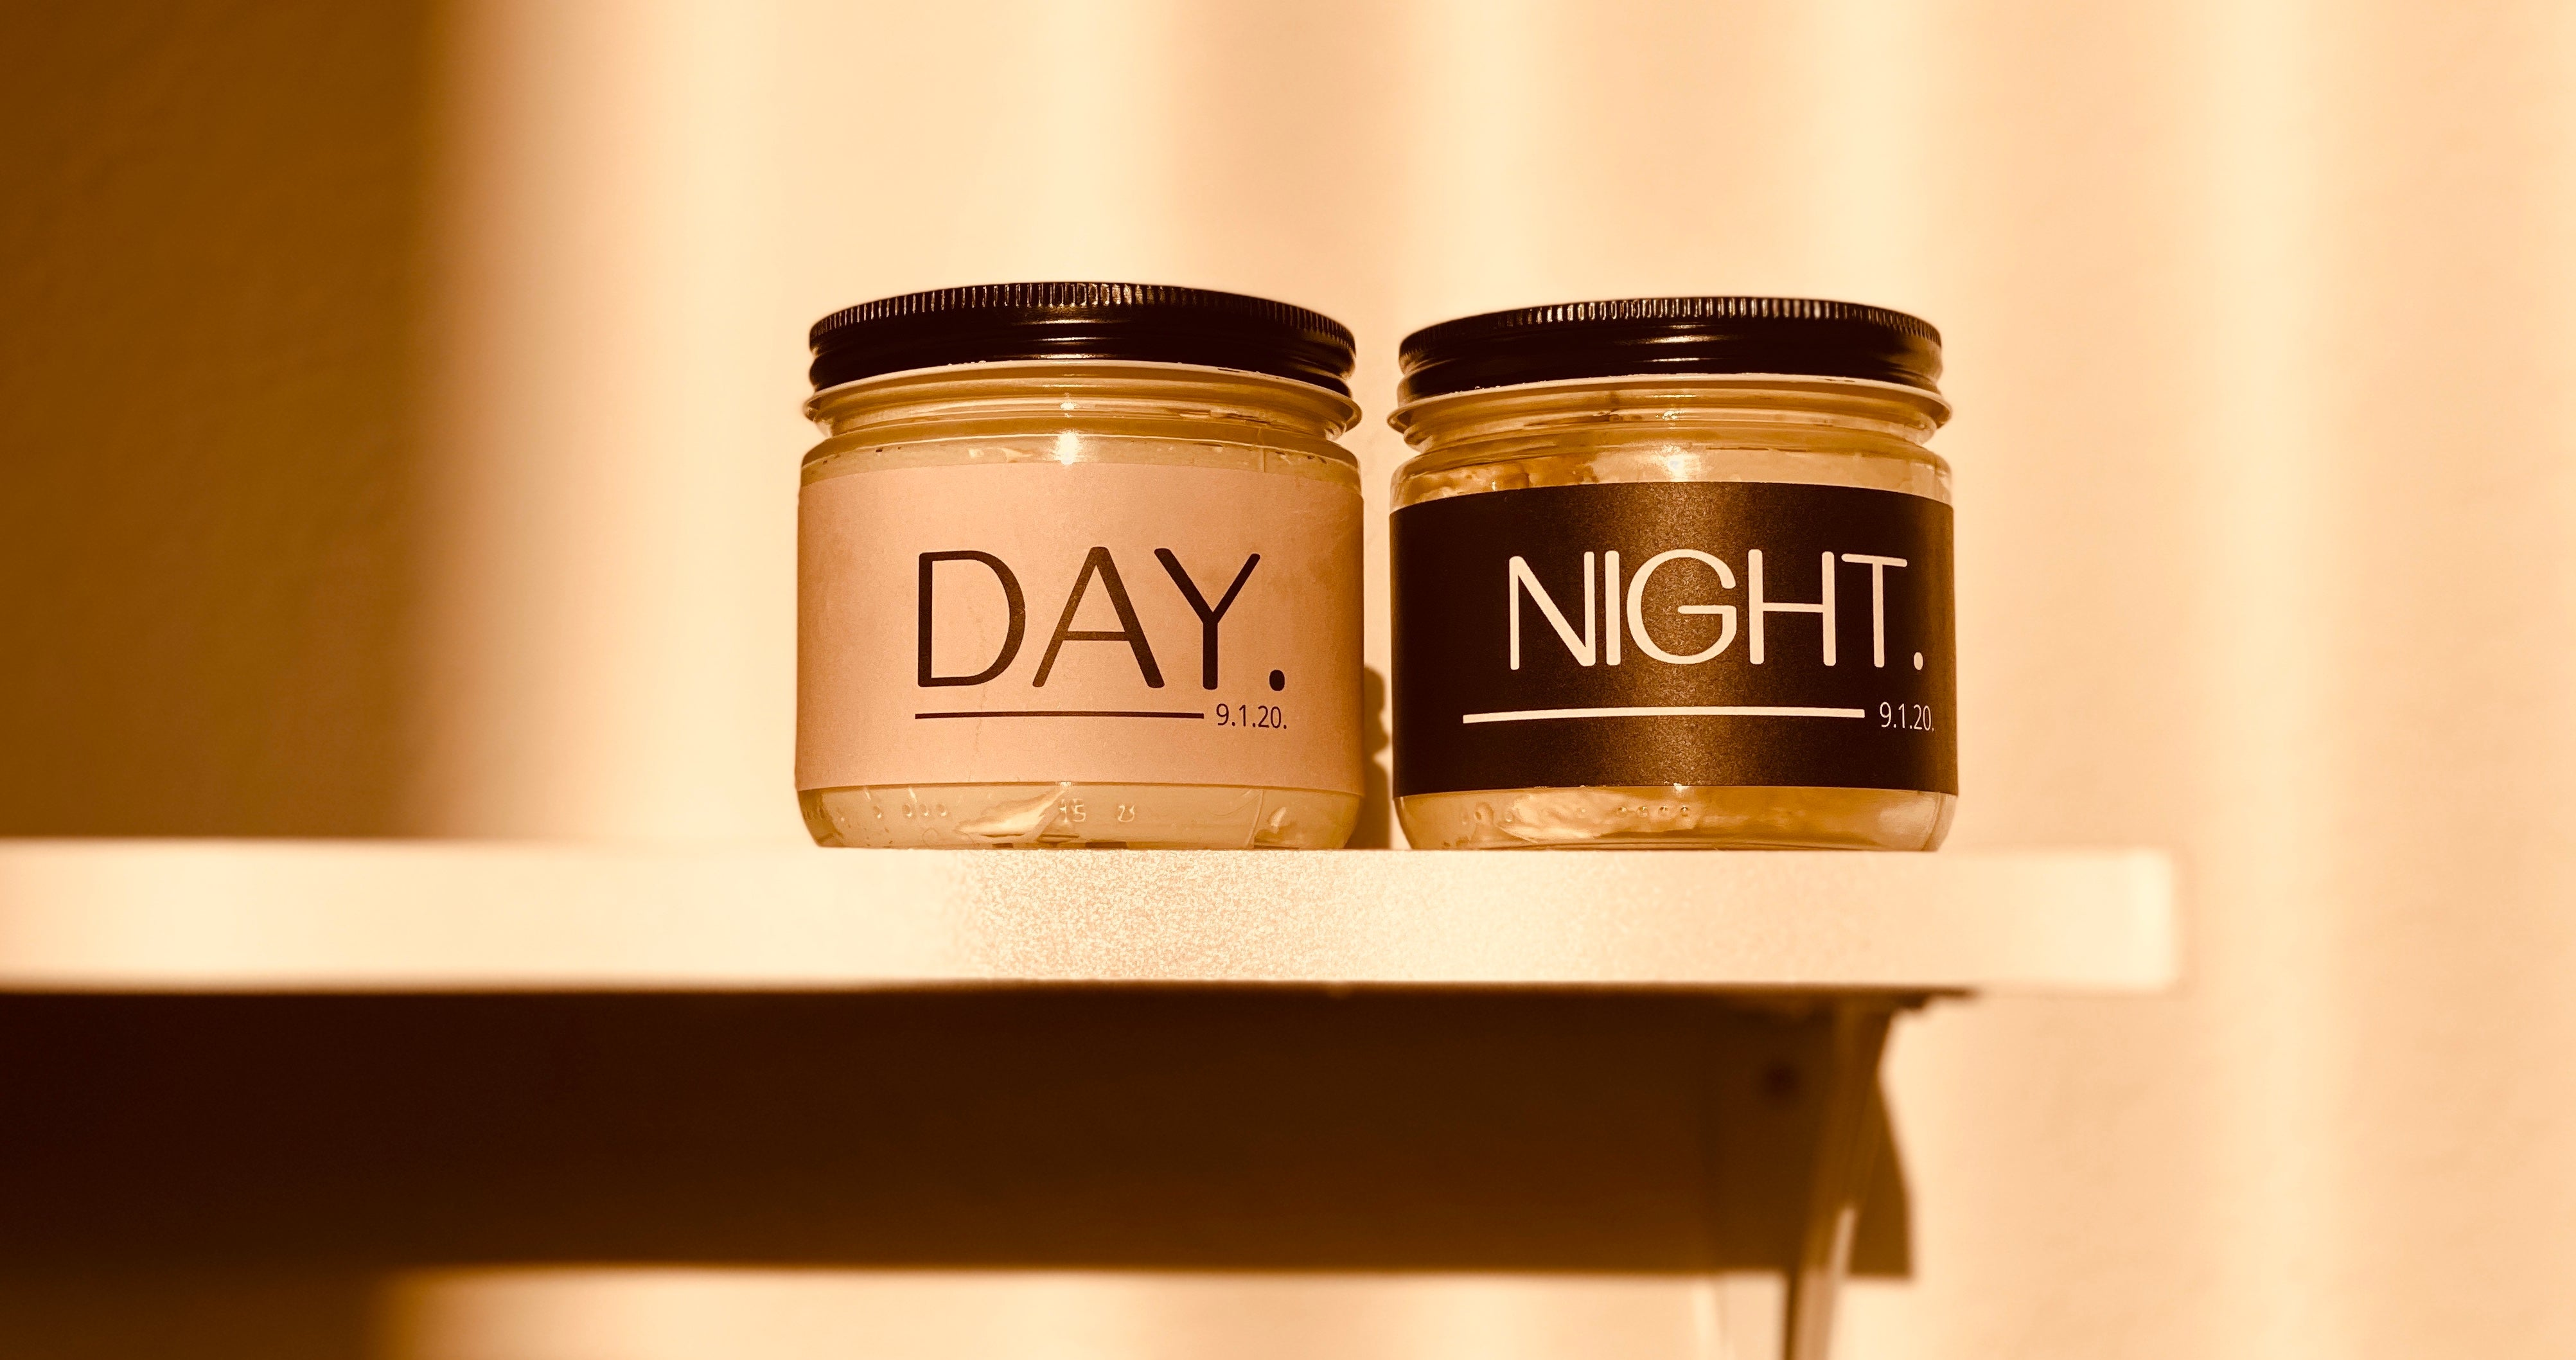 Day and Night Body Butters on a shelf in the sunlight